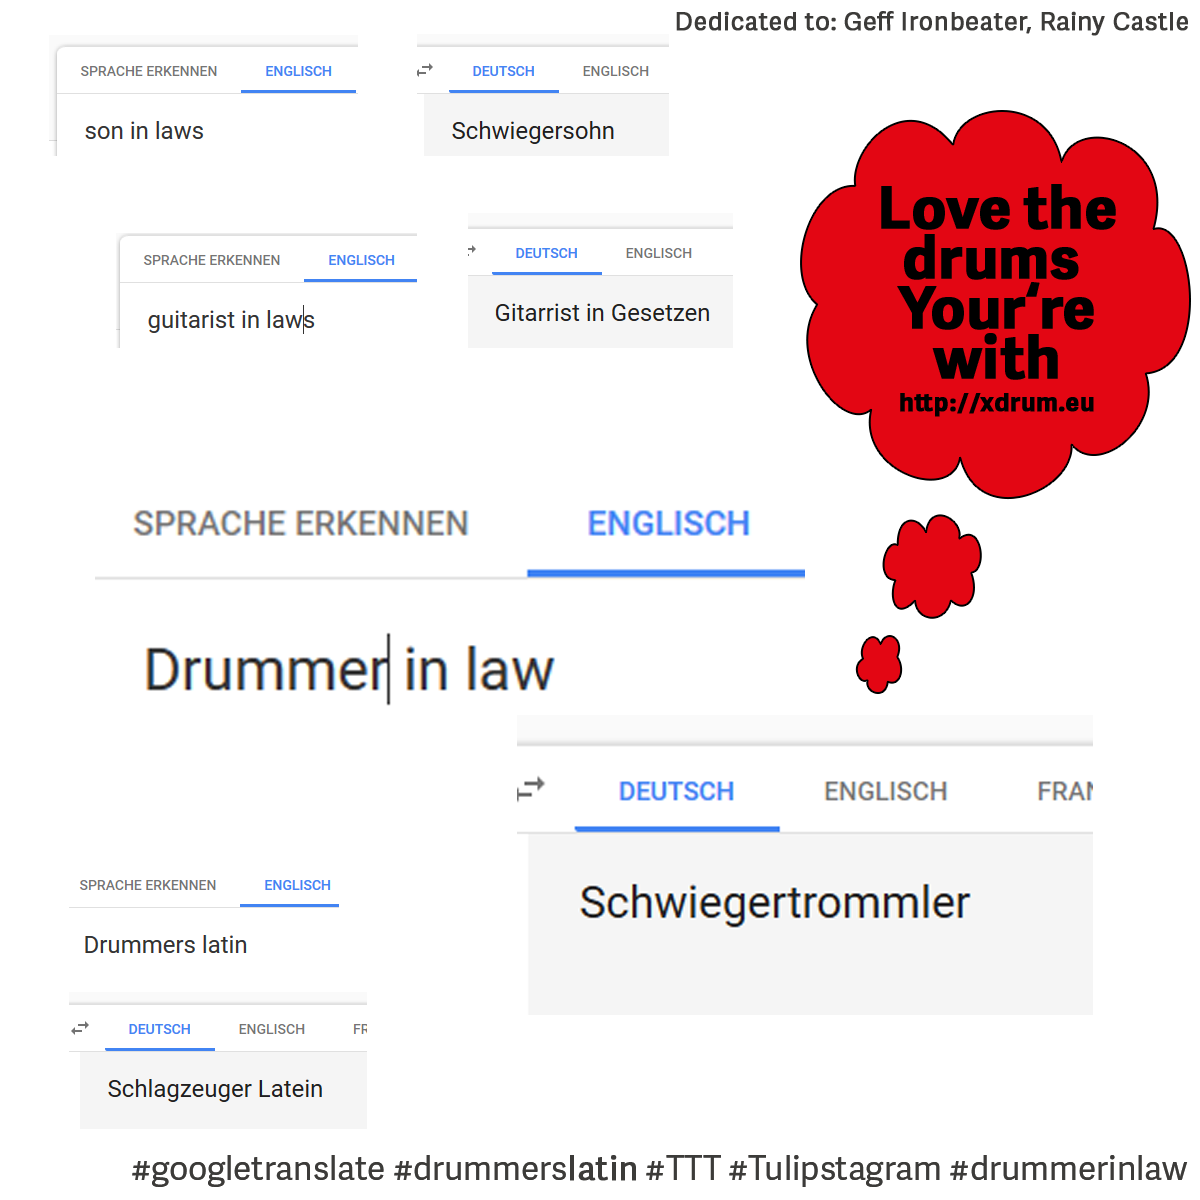 Son in laws - guitarist in laws - Drummer in law #googletranslate #drummerslatin #TTT #Tulipstagram #drummerinlaw